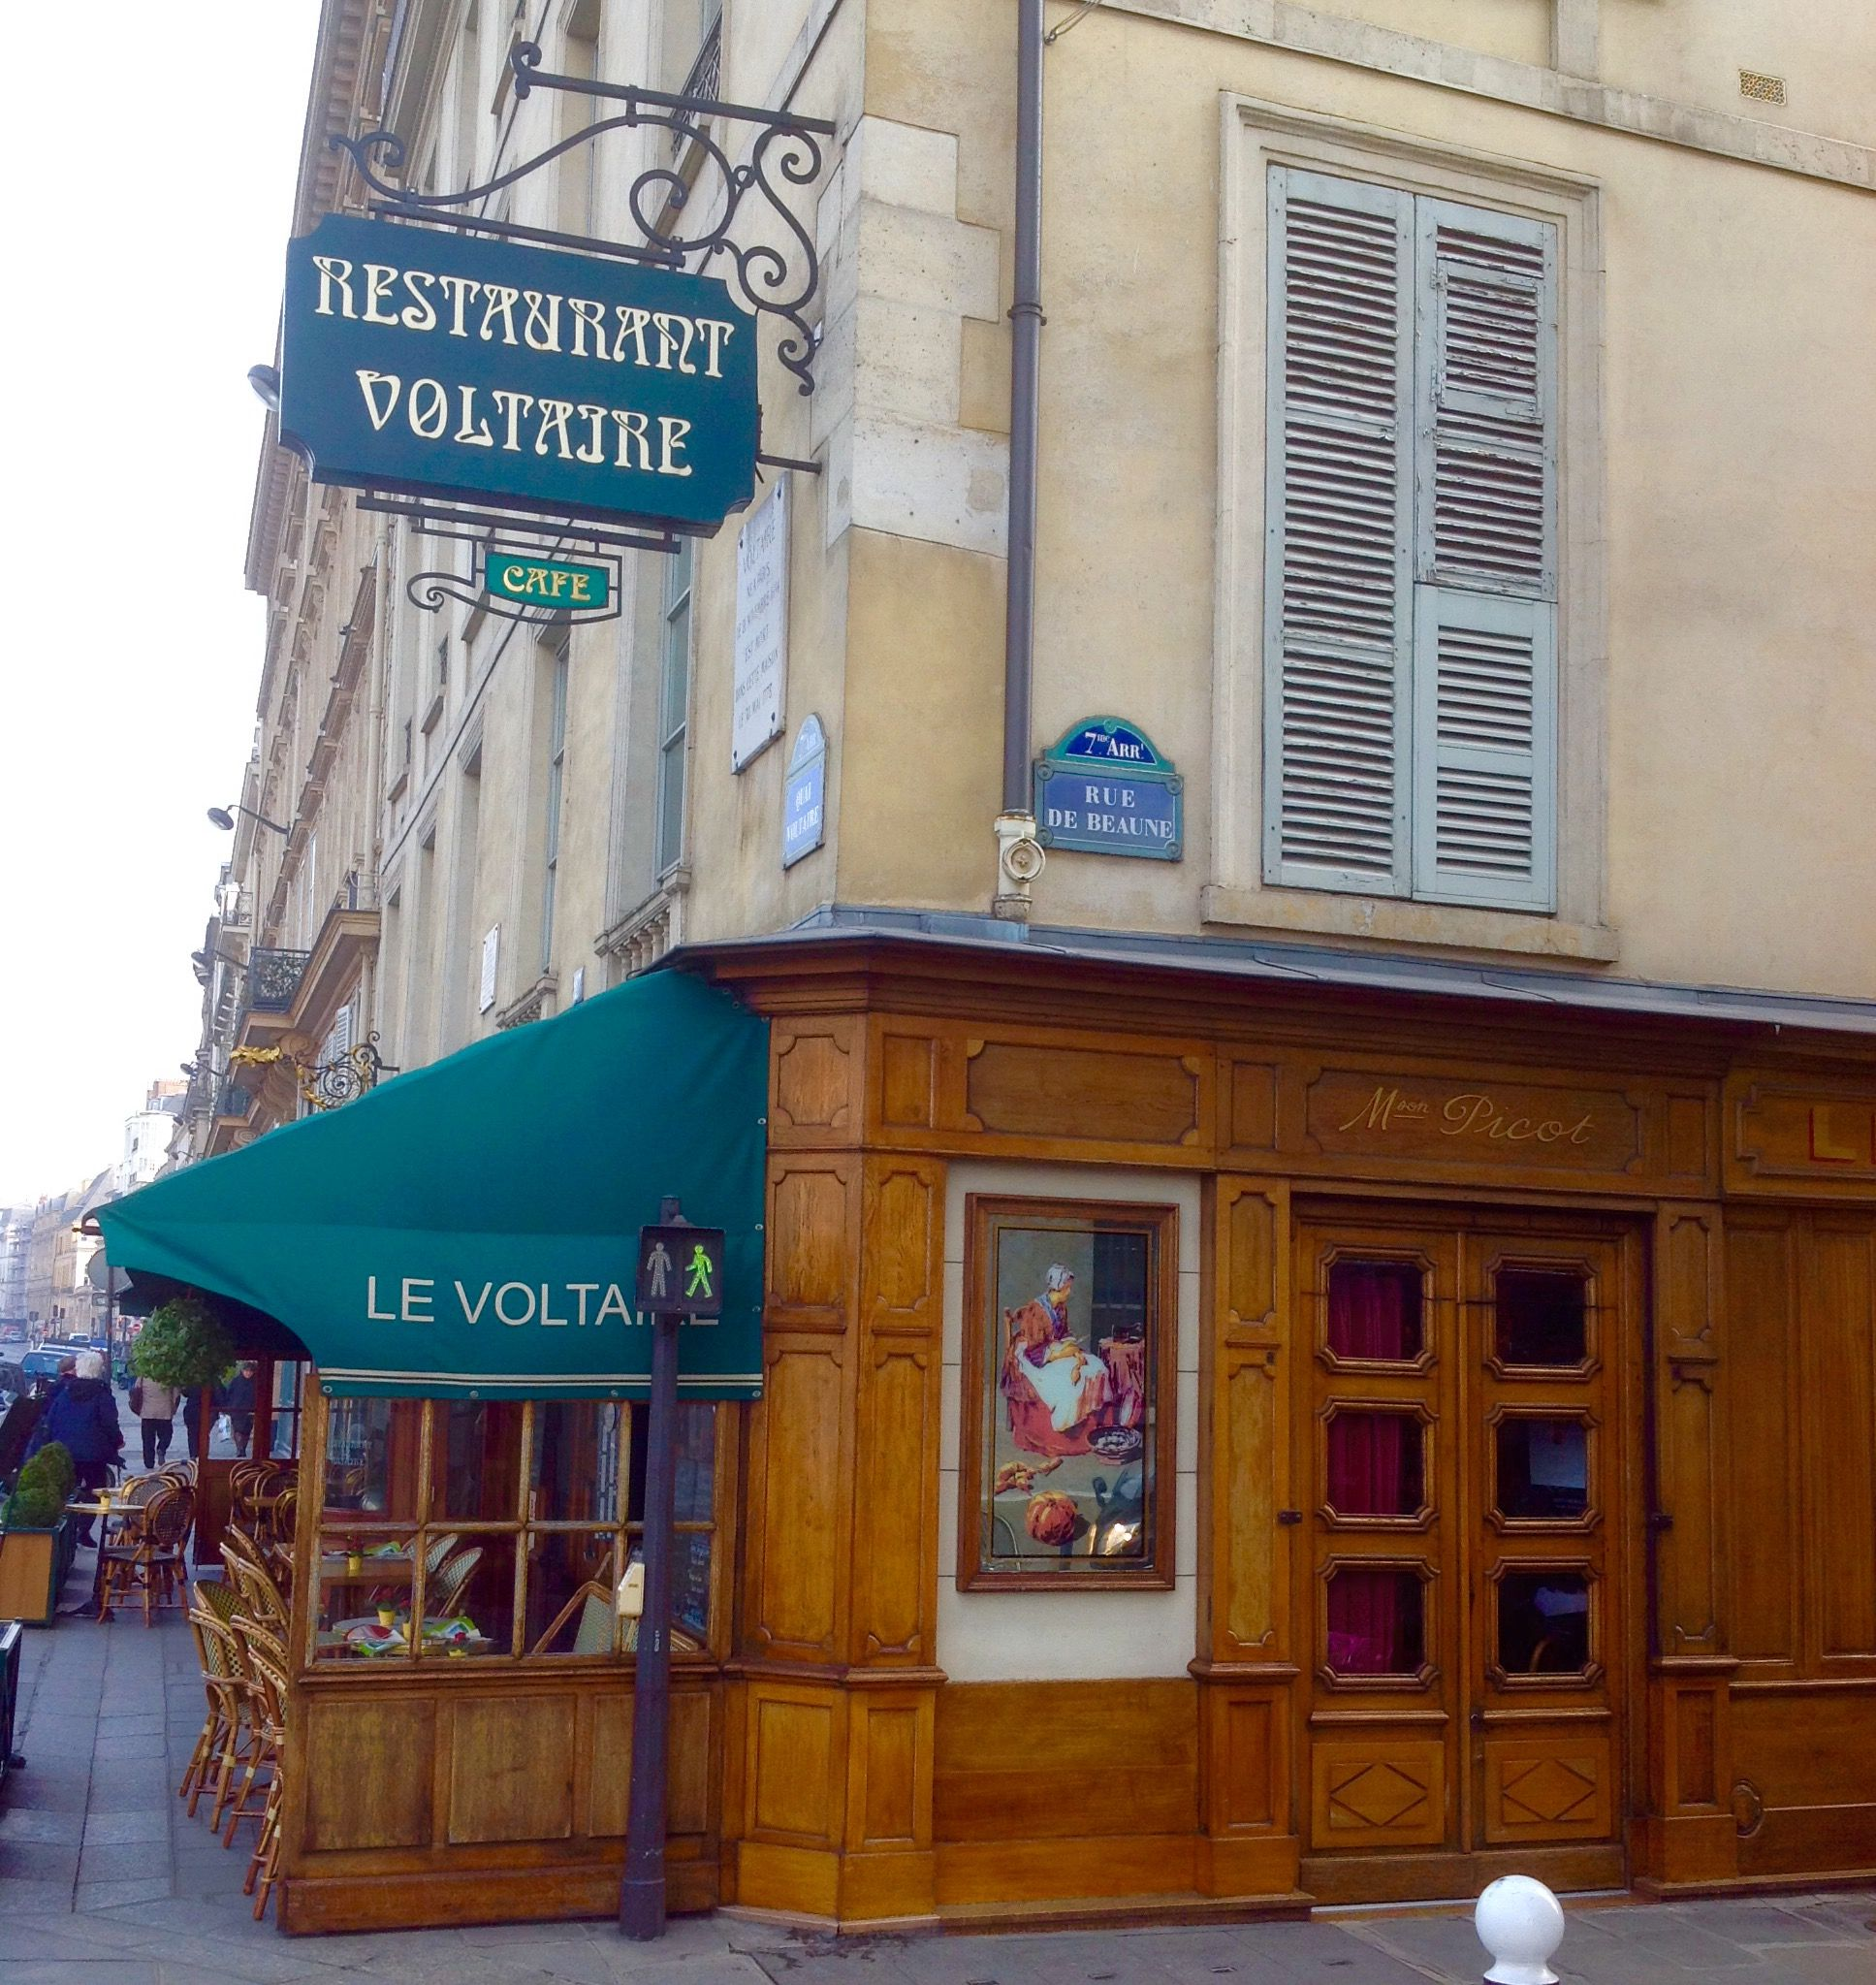 Le Voltaire Is An Old And Traditional Restaurant Near The Museum